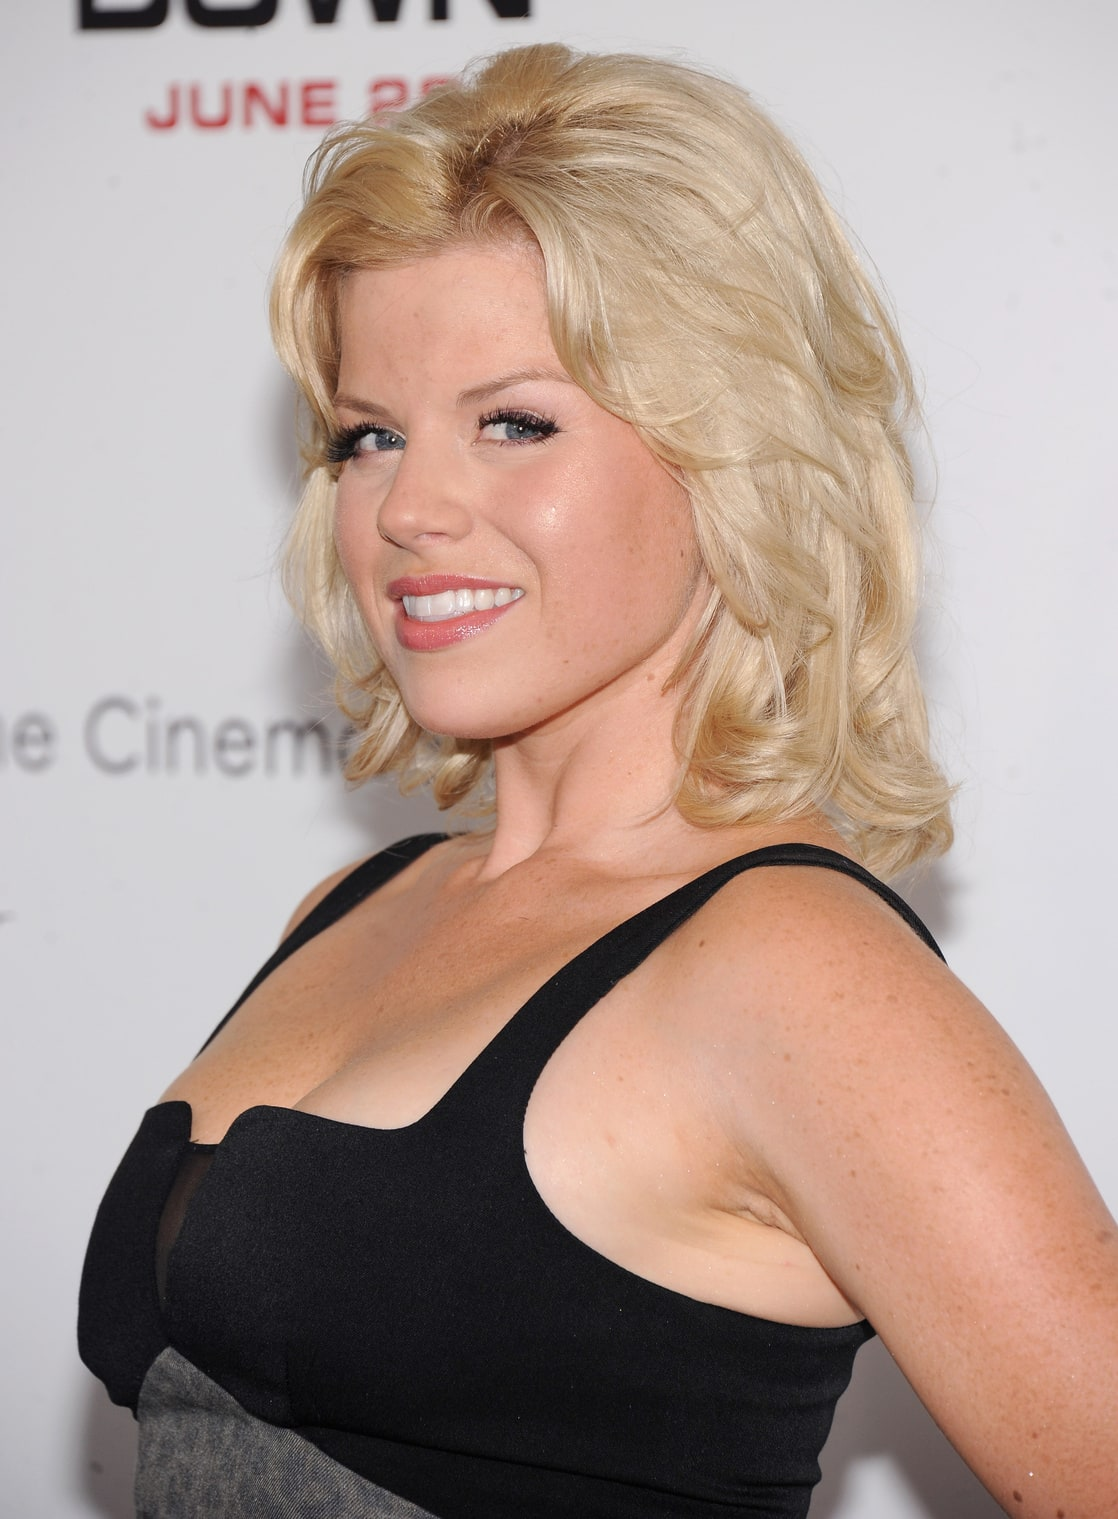 Picture Of Megan Hilty